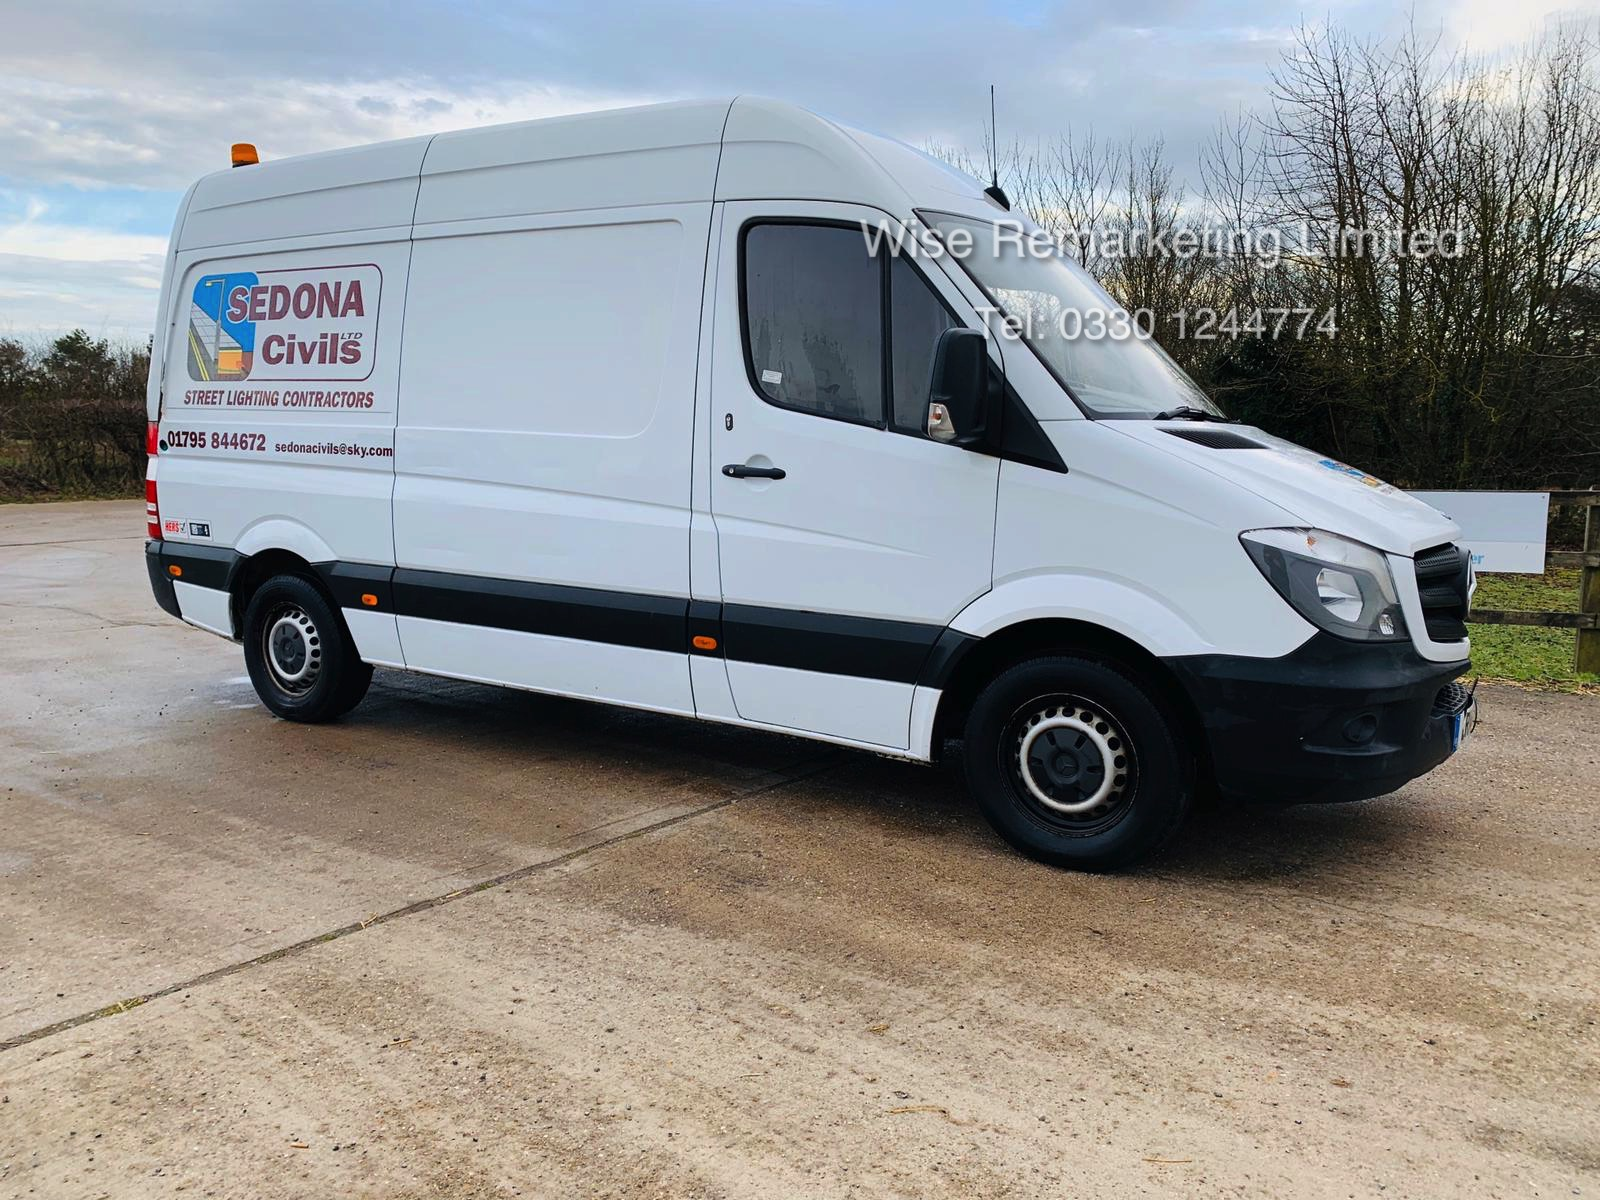 Mercedes Sprinter 313 2.1 CDI - 2014 14 Reg - 6 Speed - Ply Lined - Company Owned - Image 3 of 18